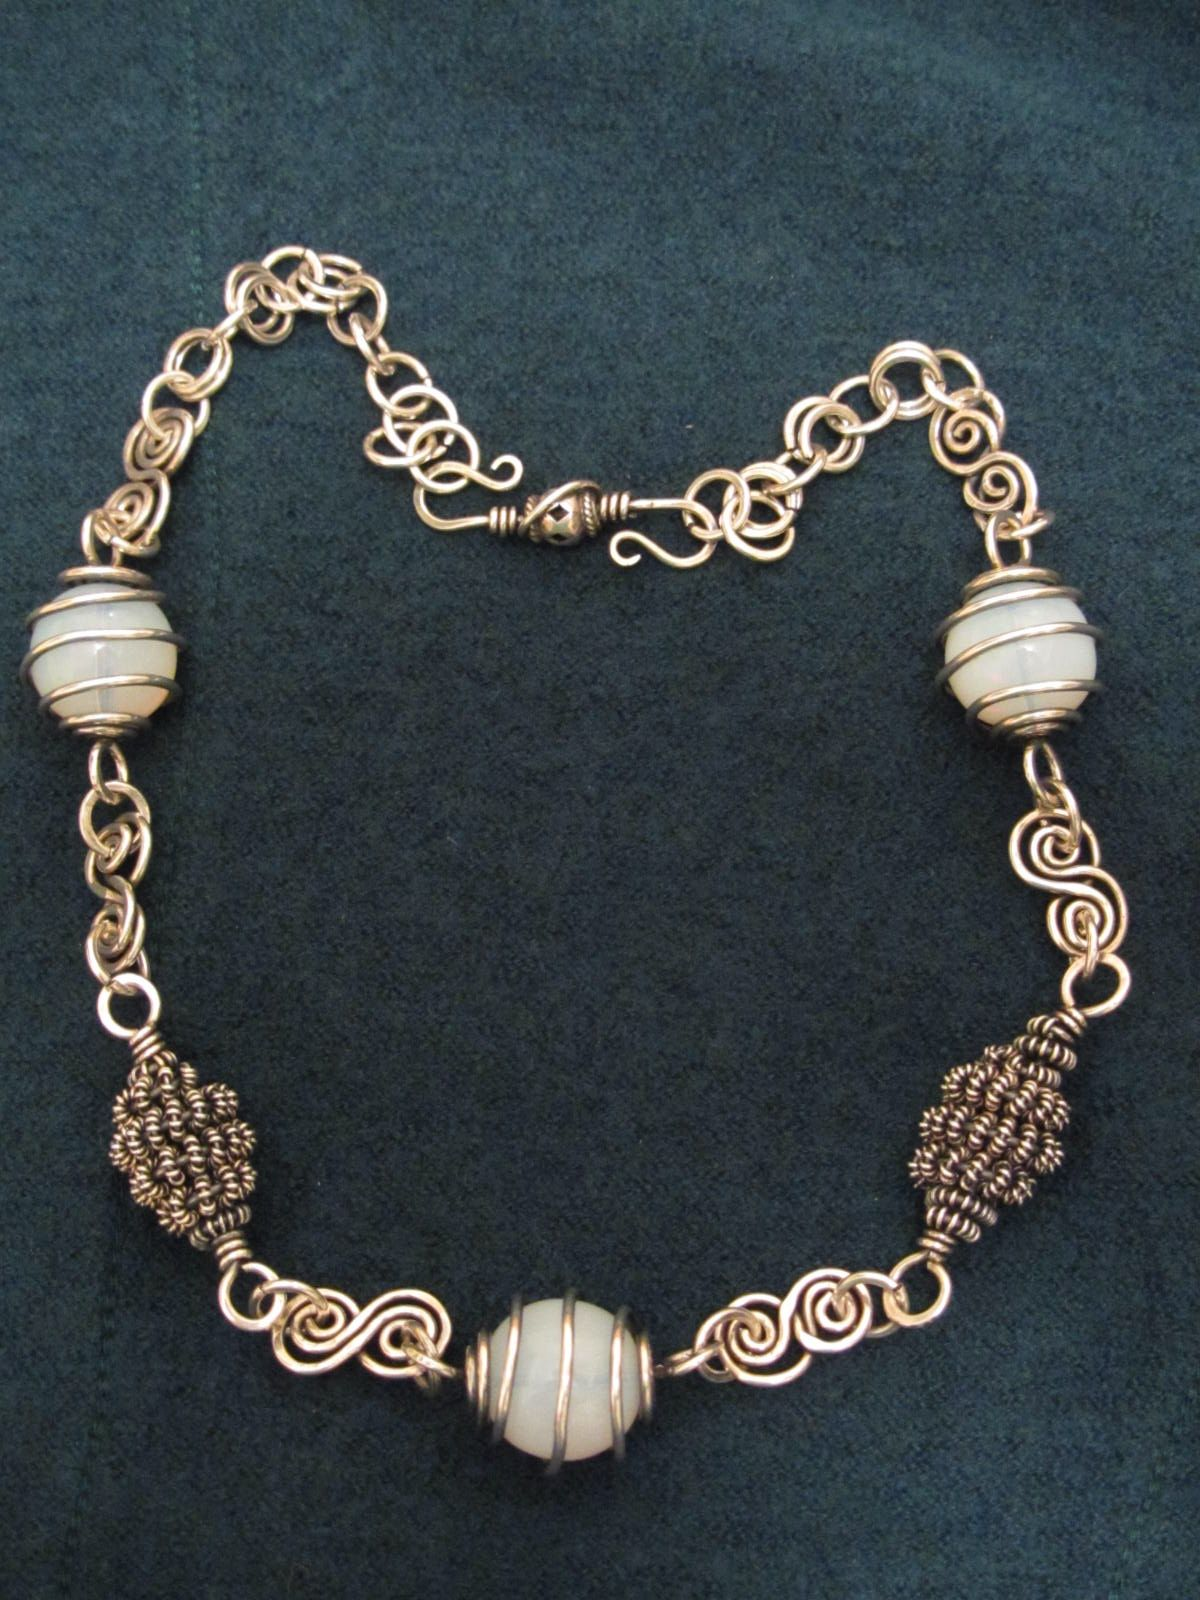 Pin by Susan Bernhard on Wirework | Pinterest | Wire wrapped ...